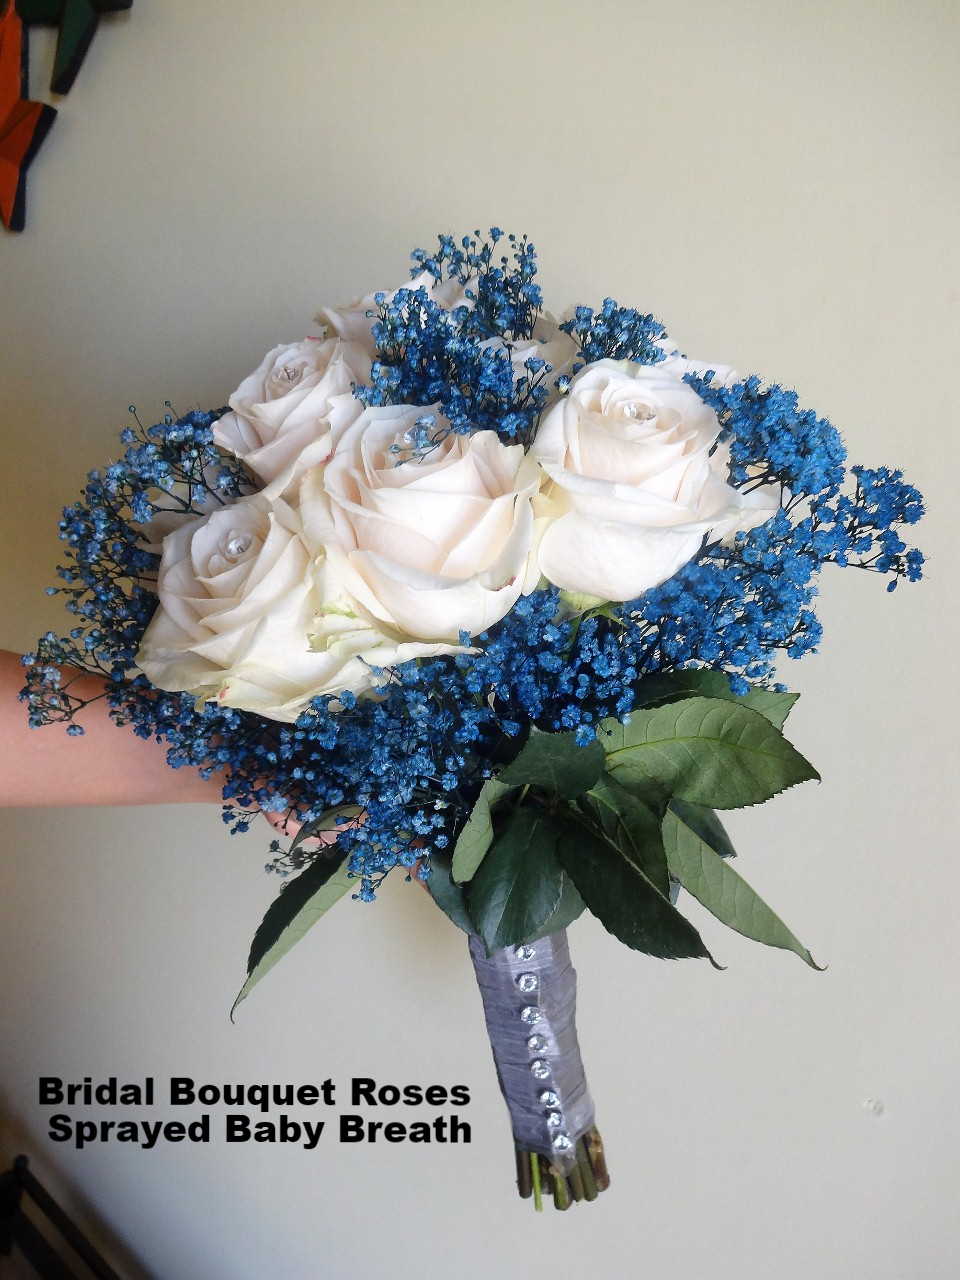 Bridal Bouquet Roses and Sprayed Baby Breath